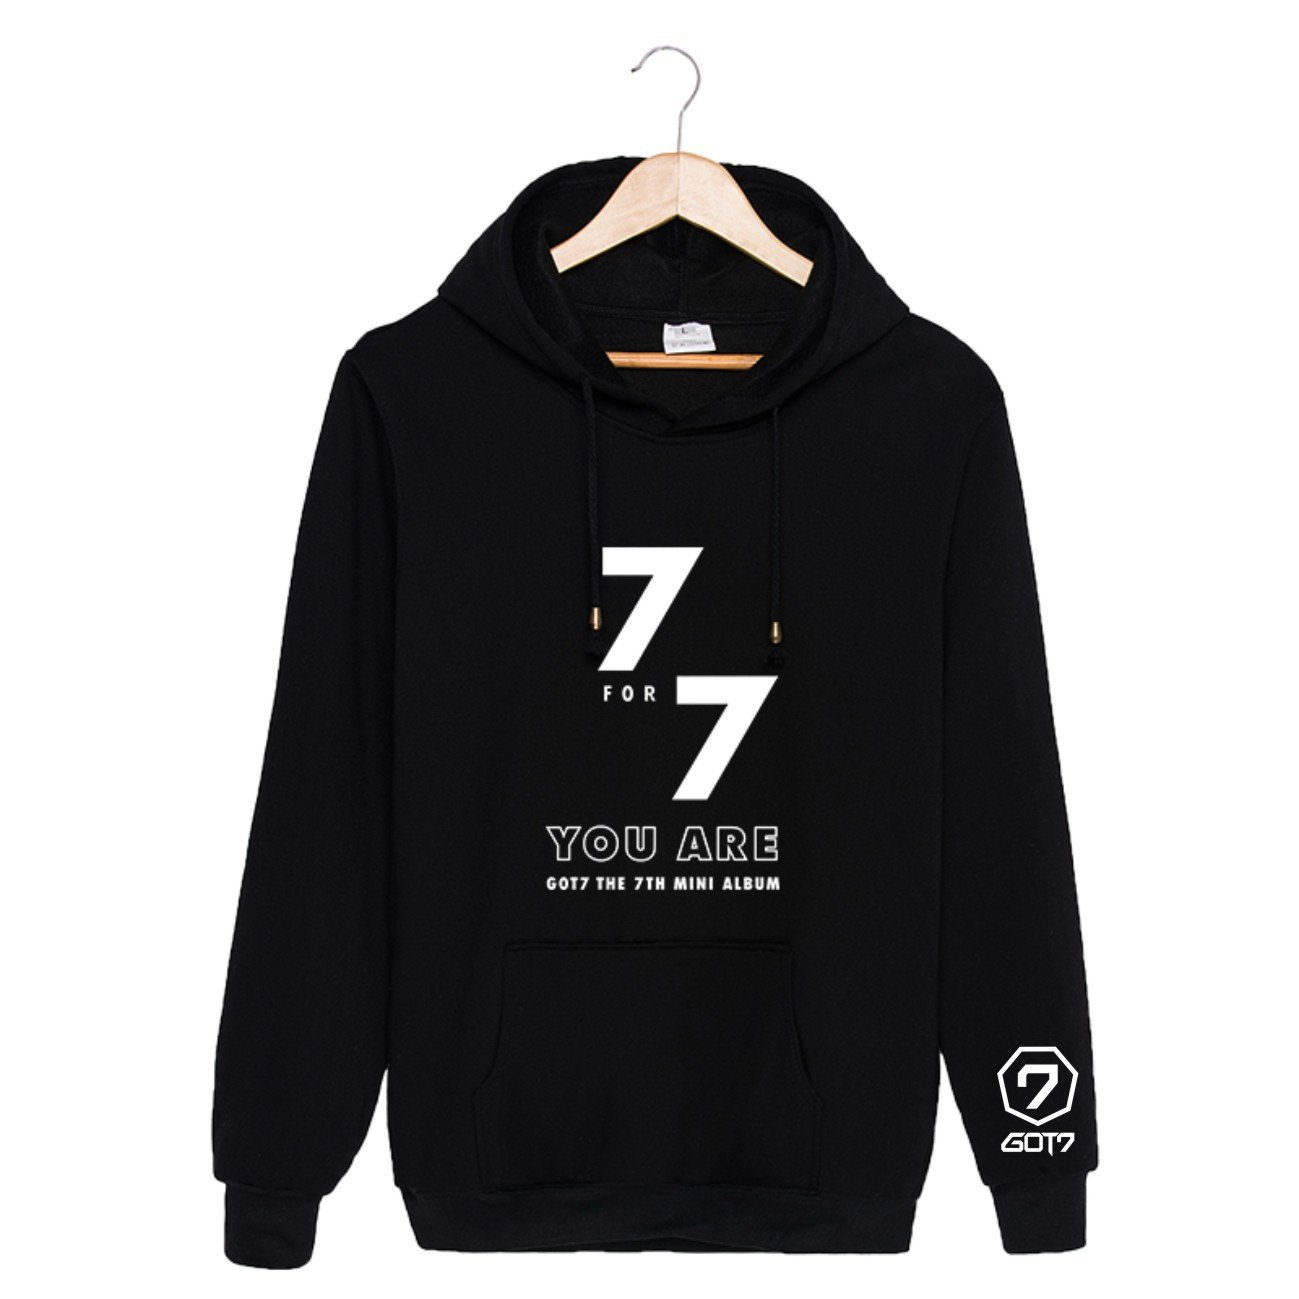 Lifestar Kpop GOT7 Hoodie Sweatshirt 7FOR7 You are Sweater Pullover (Black, US M = Asia XL)